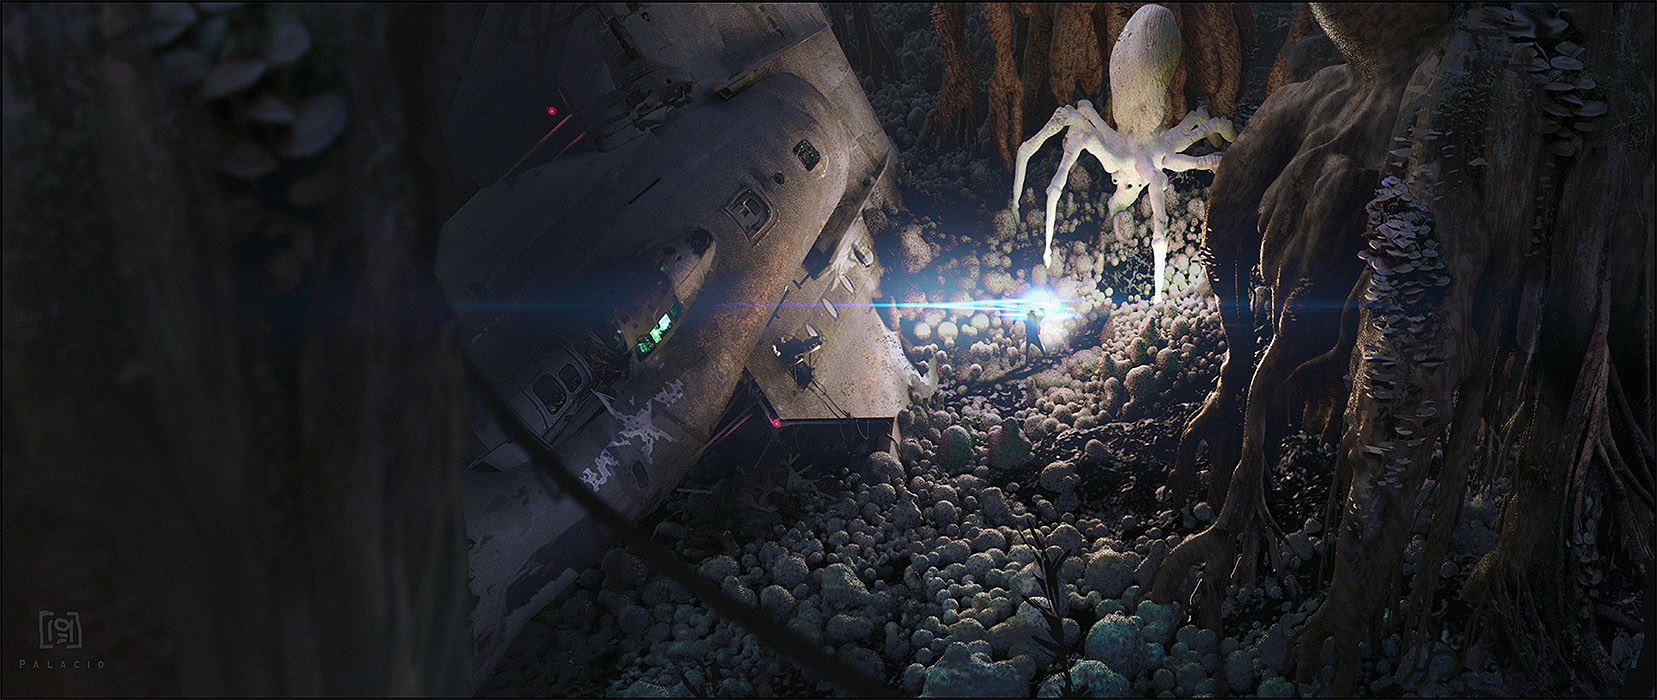 Tribute to Ralph McQuarrie. (Dagobah planet)